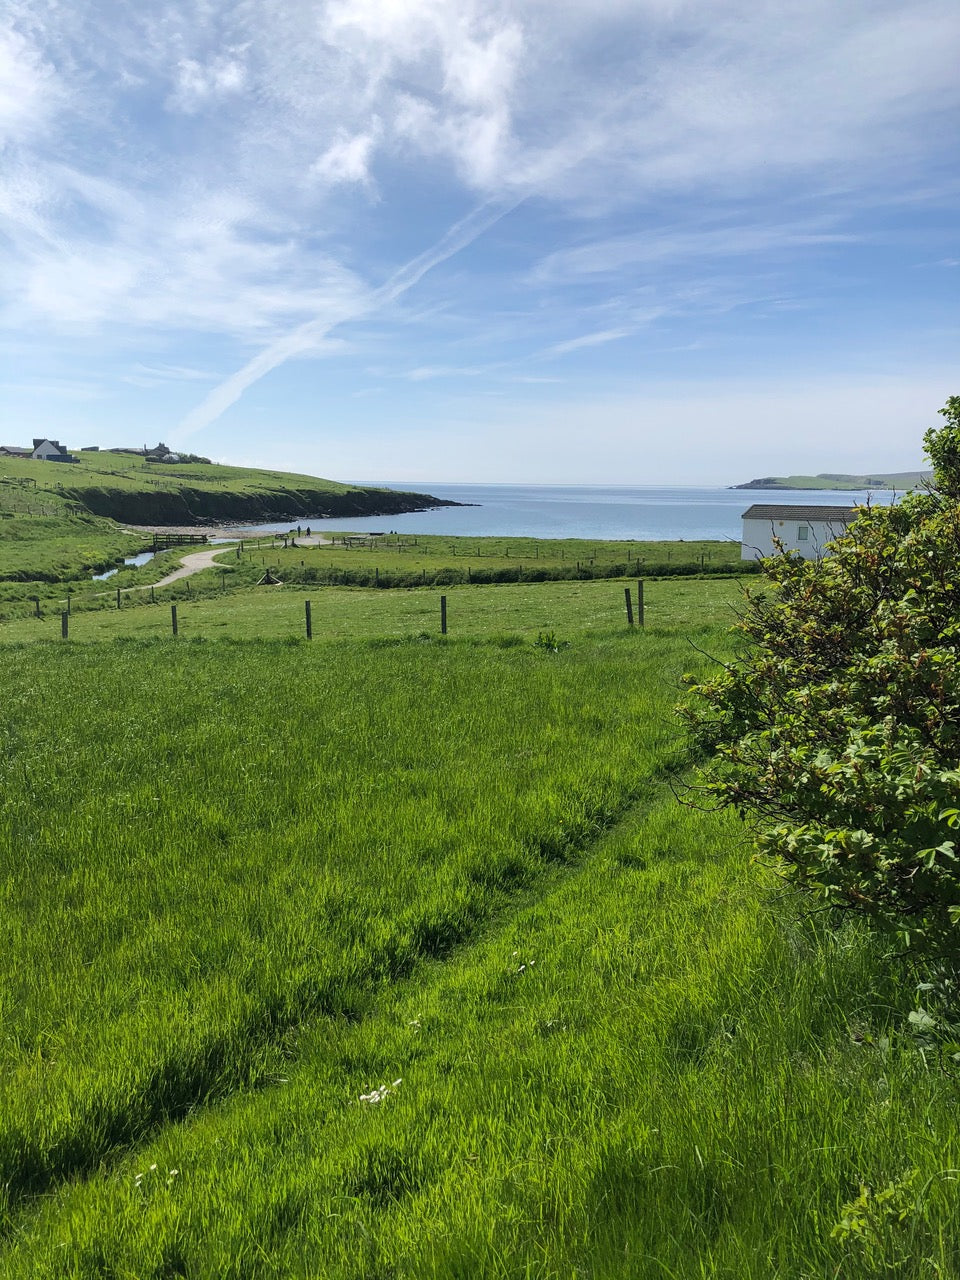 A view to Hoswick bay, Shetland, across fields on a sunny summer day. Blue sky and wispy clouds. Lush green grass.